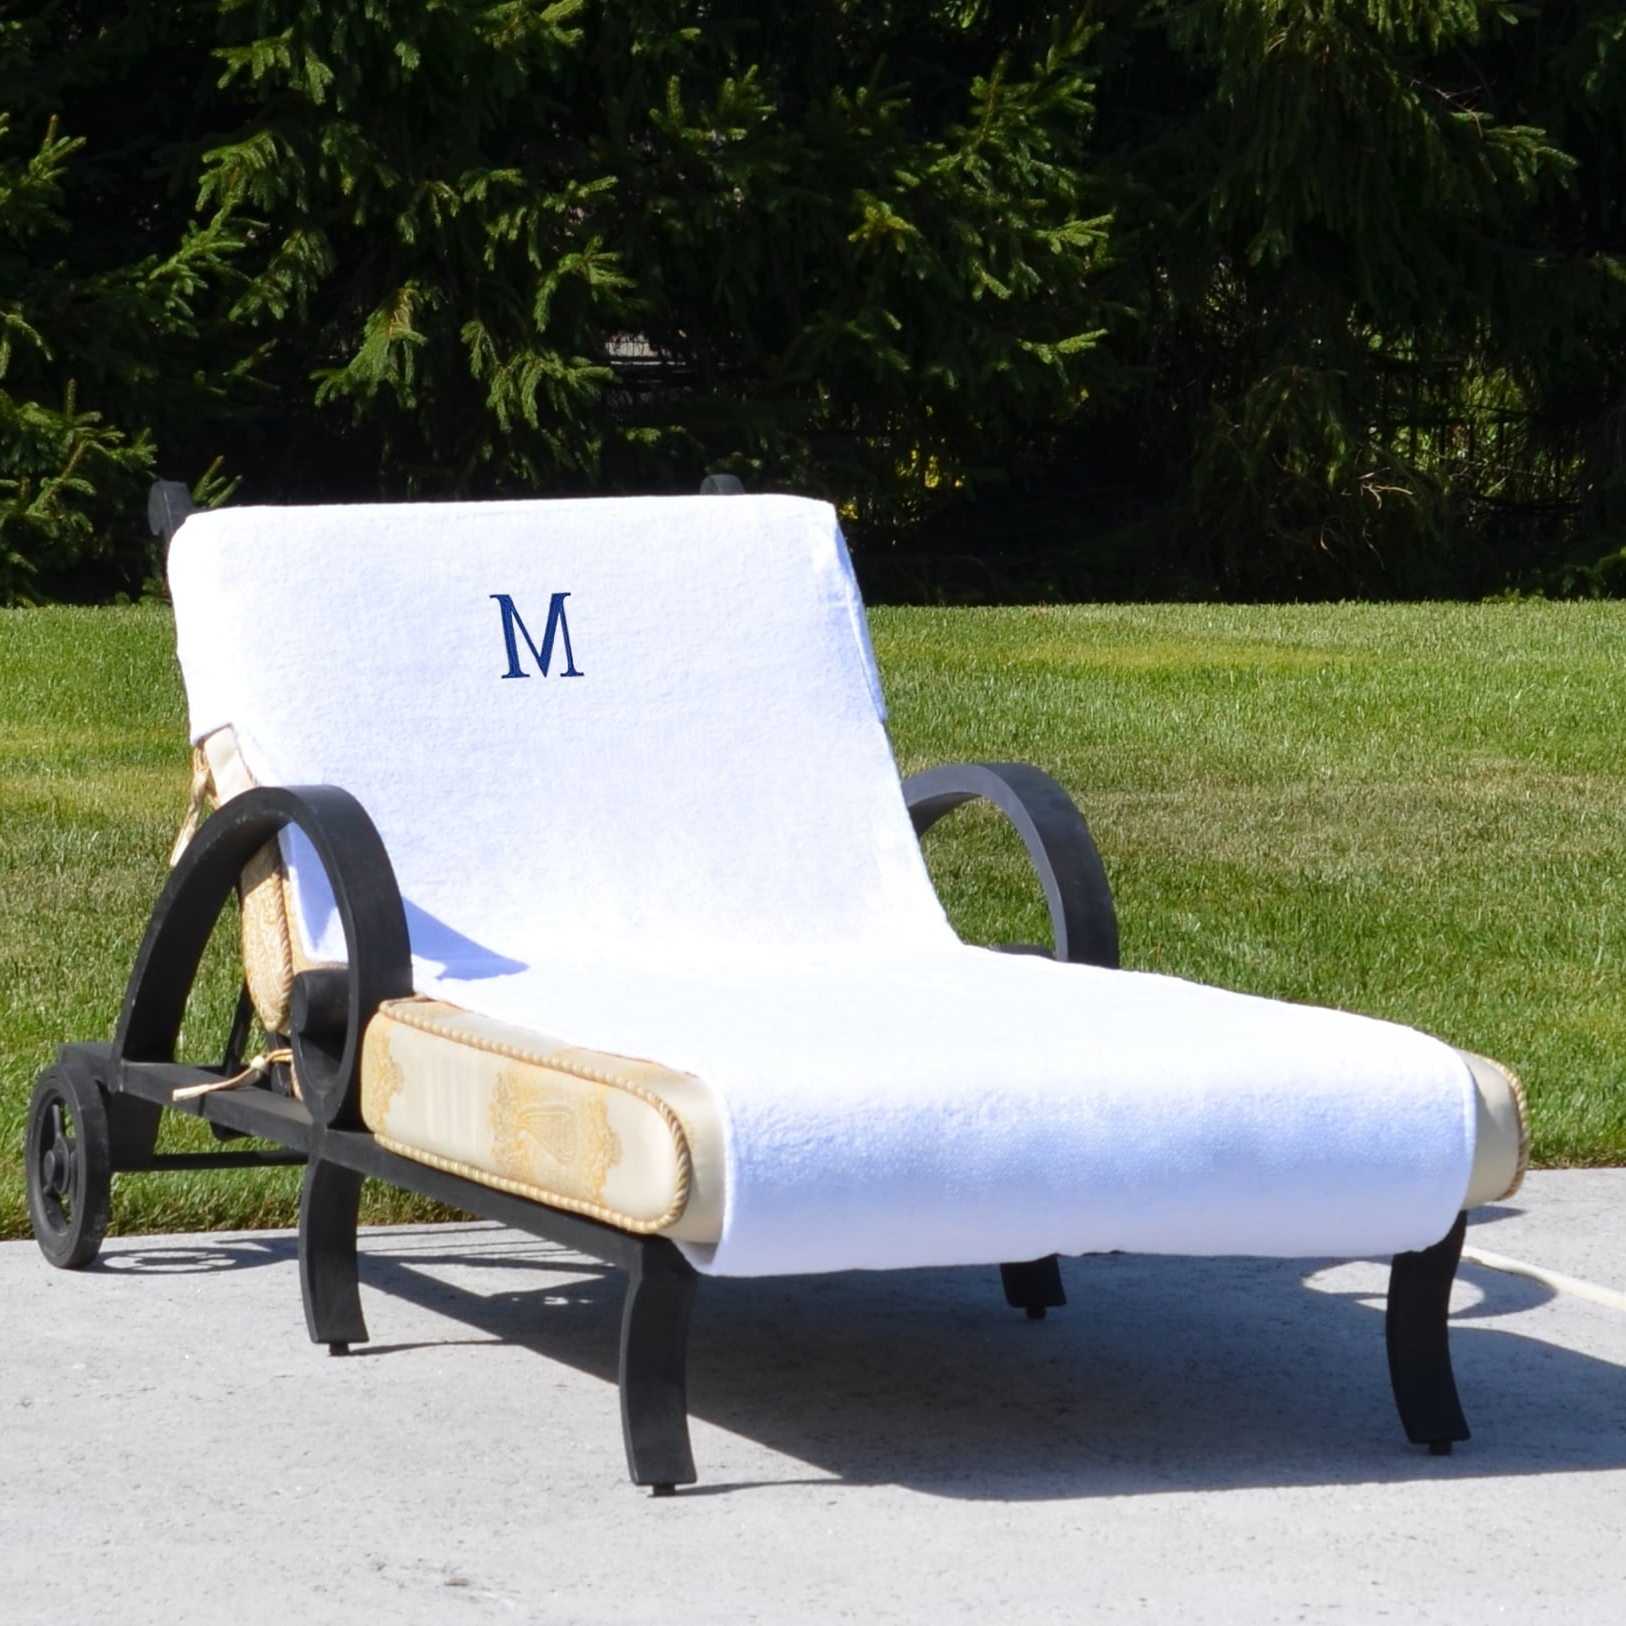 Trendy Hotel Chaise Lounge Chairs Within Authentic Hotel And Spa Turkish Cotton Monogrammed Towel Cover For (View 7 of 15)